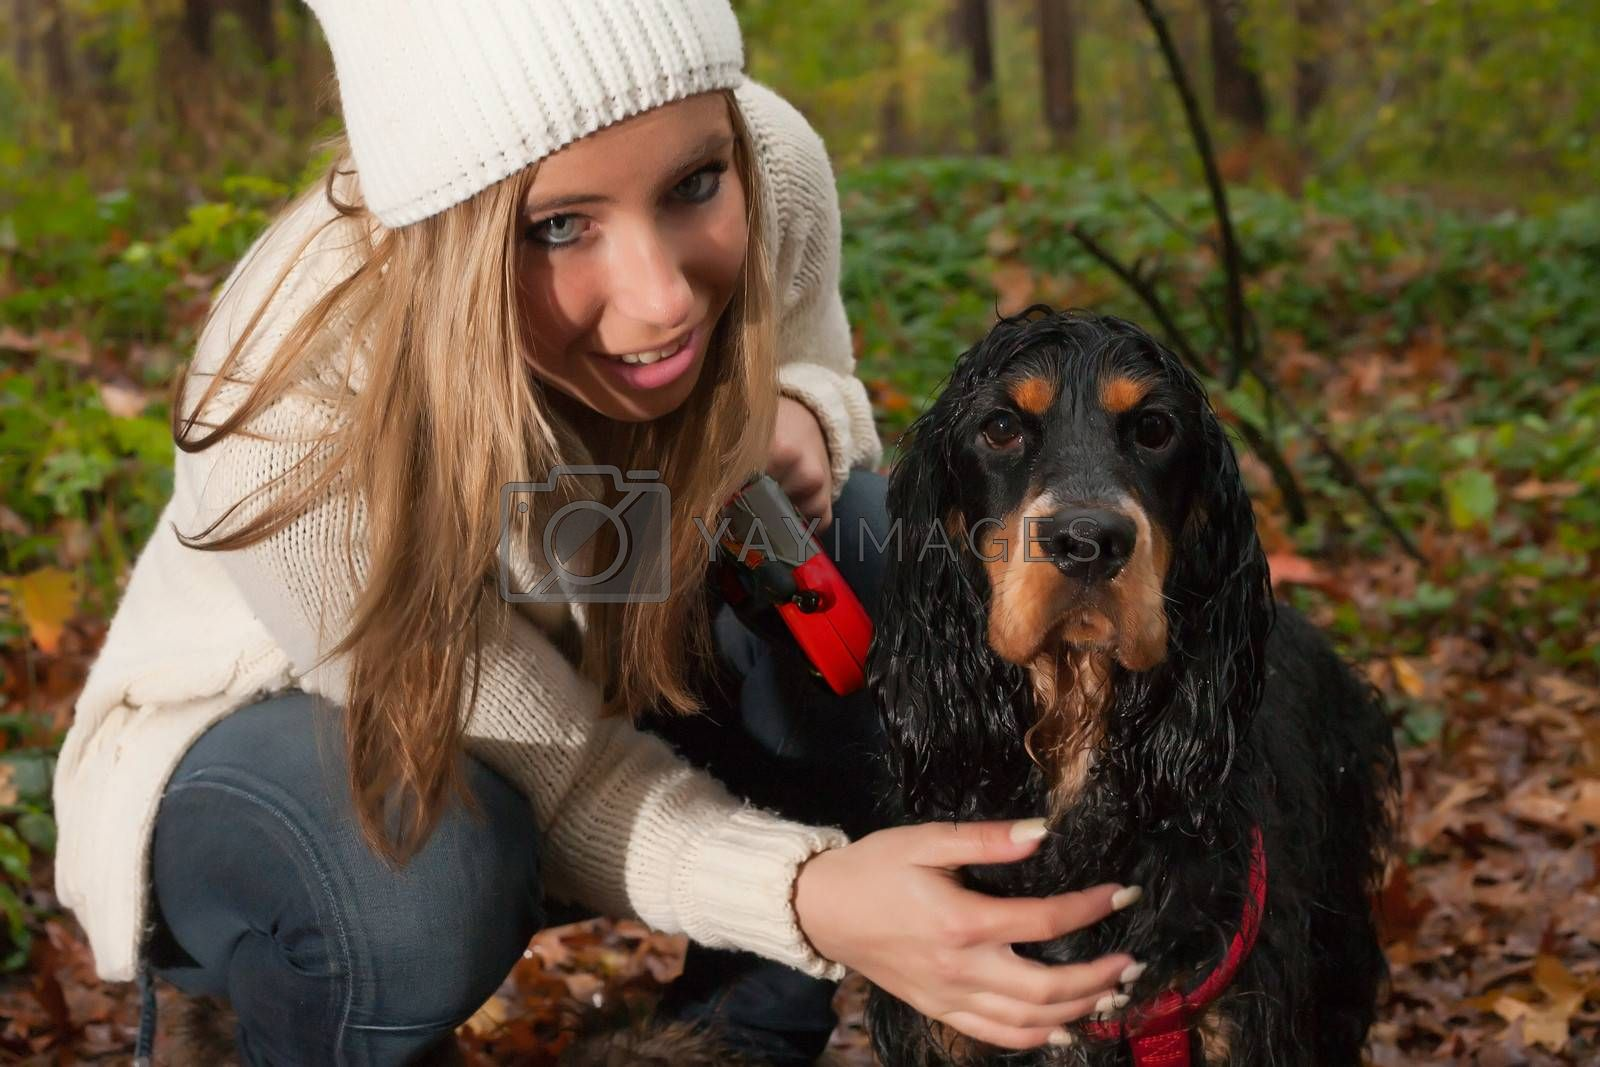 Girl and her dog are having a wet time in the rain